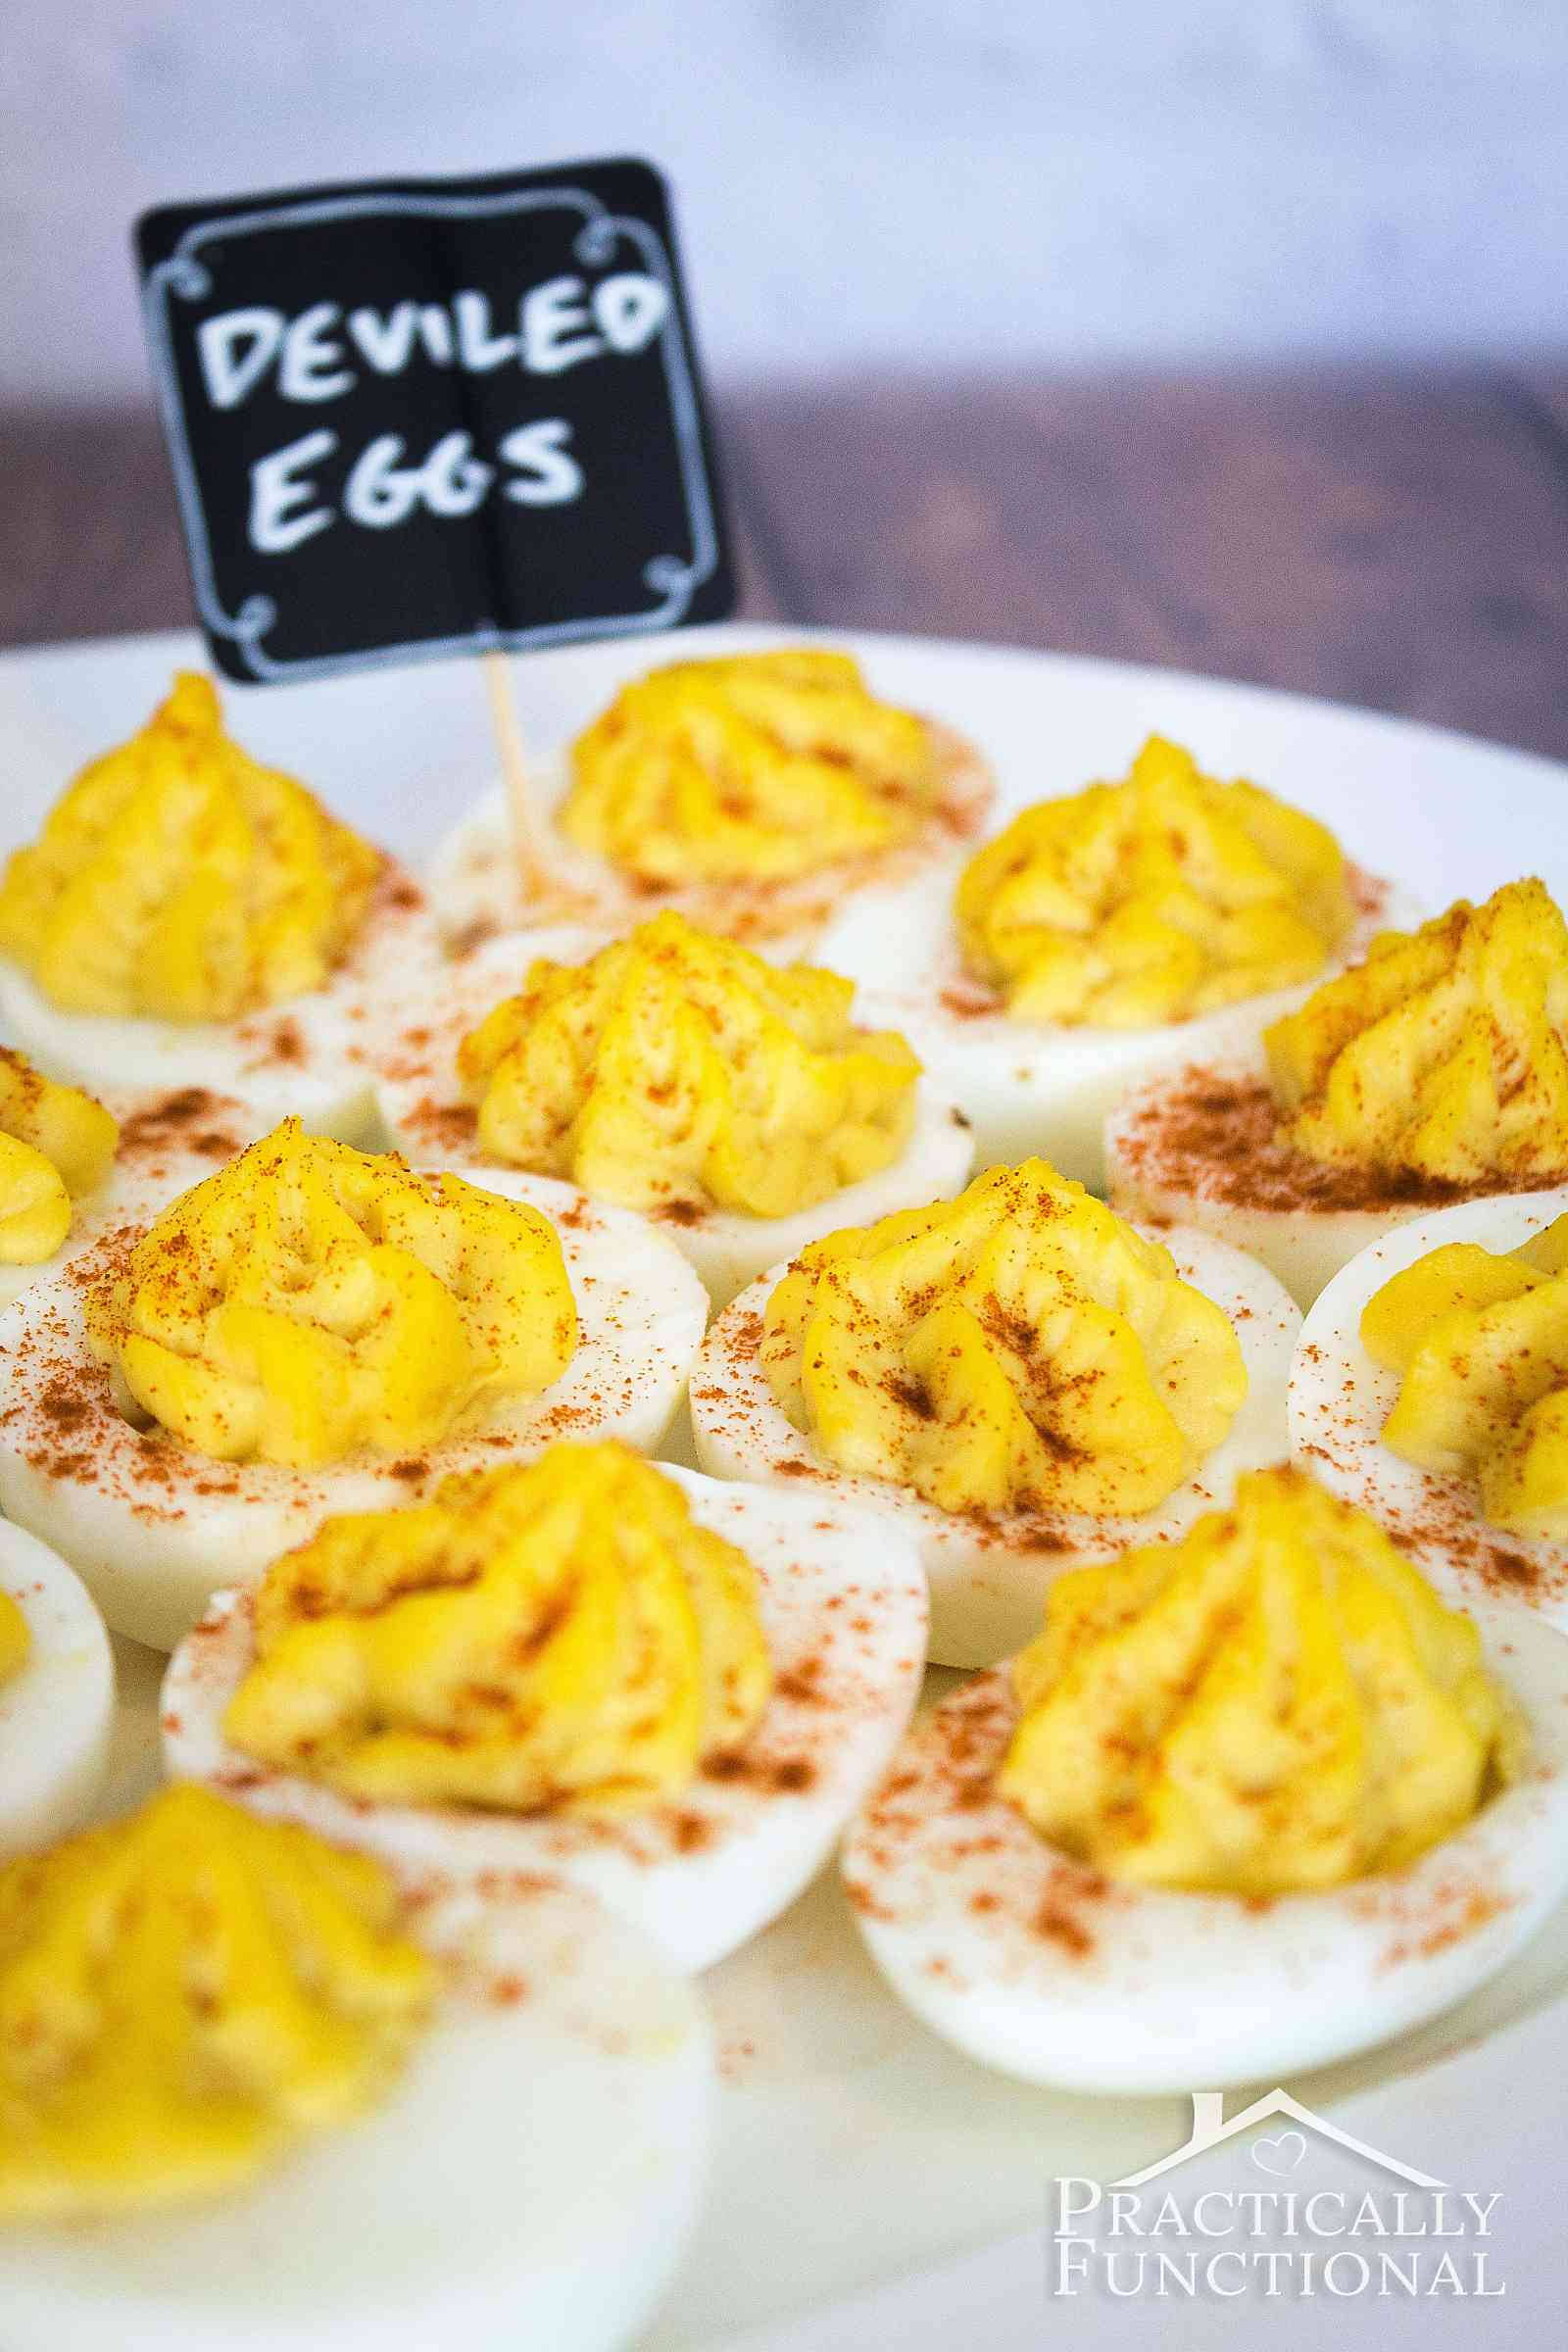 These classic deviled eggs are the perfect, easy-to-make appetizer for any occasion, from a casual football party to a fancy brunch!